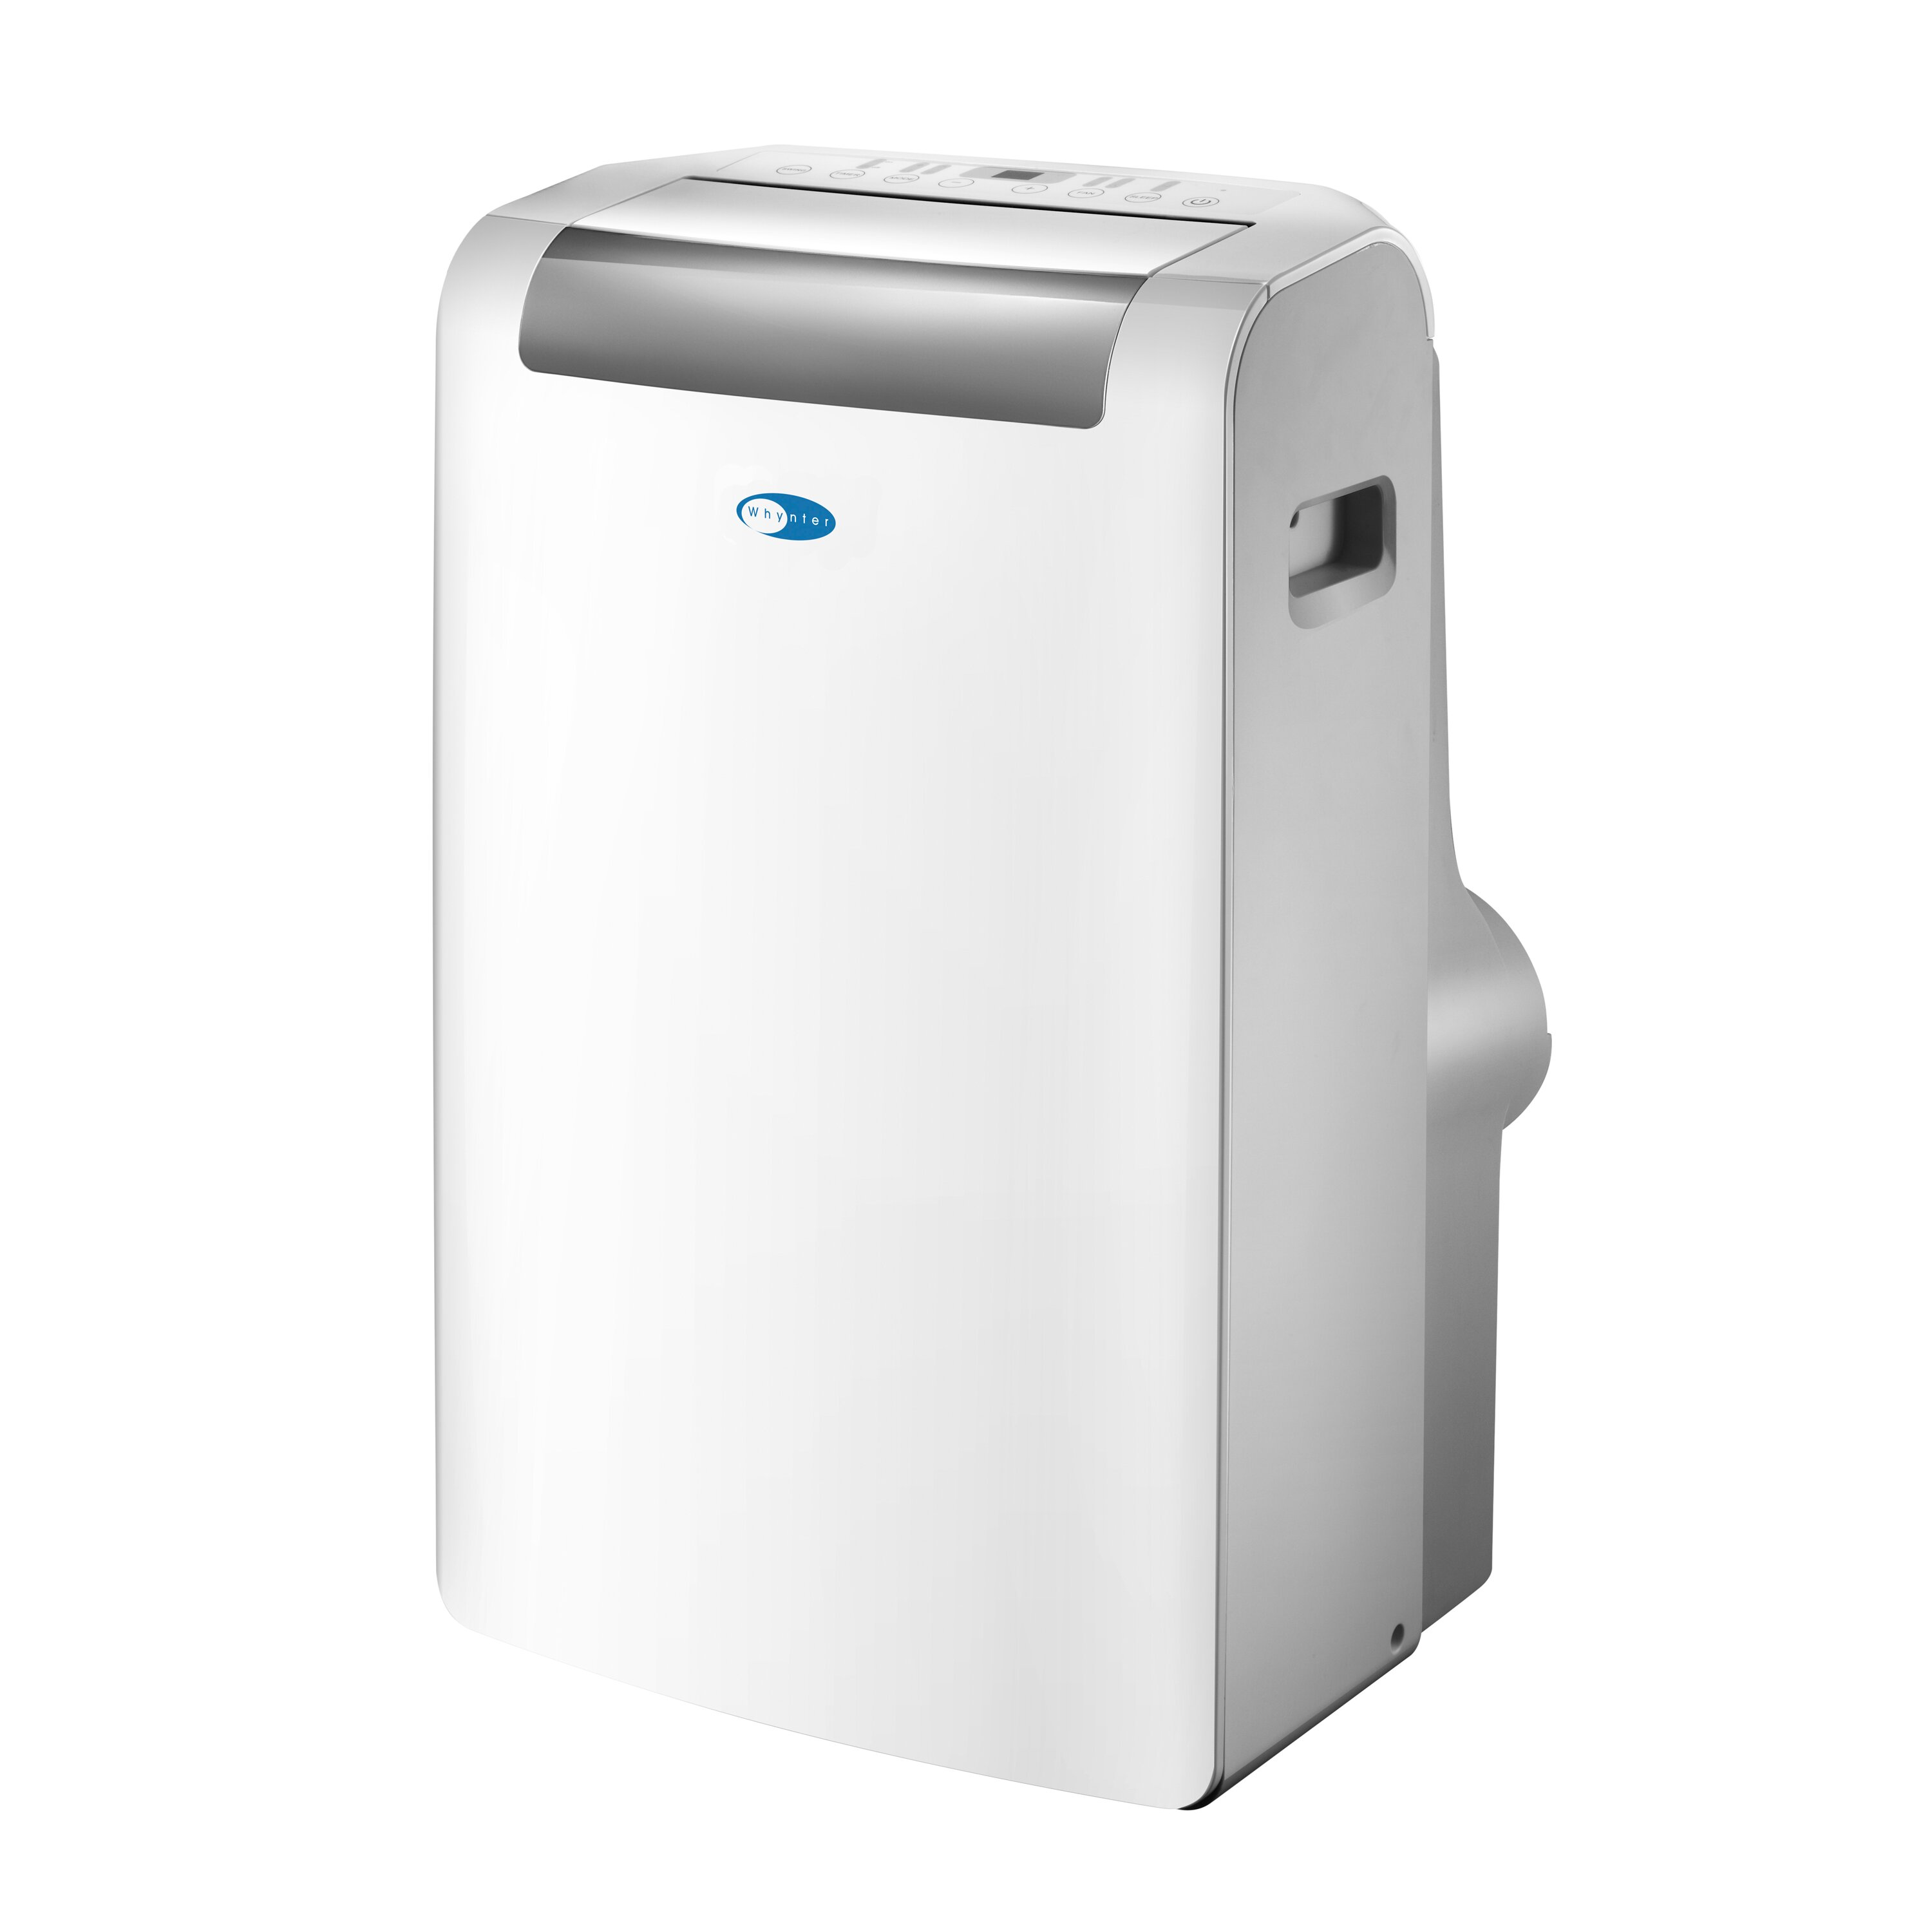 #0069A8 Whynter 14000 BTU Portable Air Conditioner & Reviews Wayfair Most Recent 13510 Portable Air Conditioner Ratings image with 3000x3000 px on helpvideos.info - Air Conditioners, Air Coolers and more